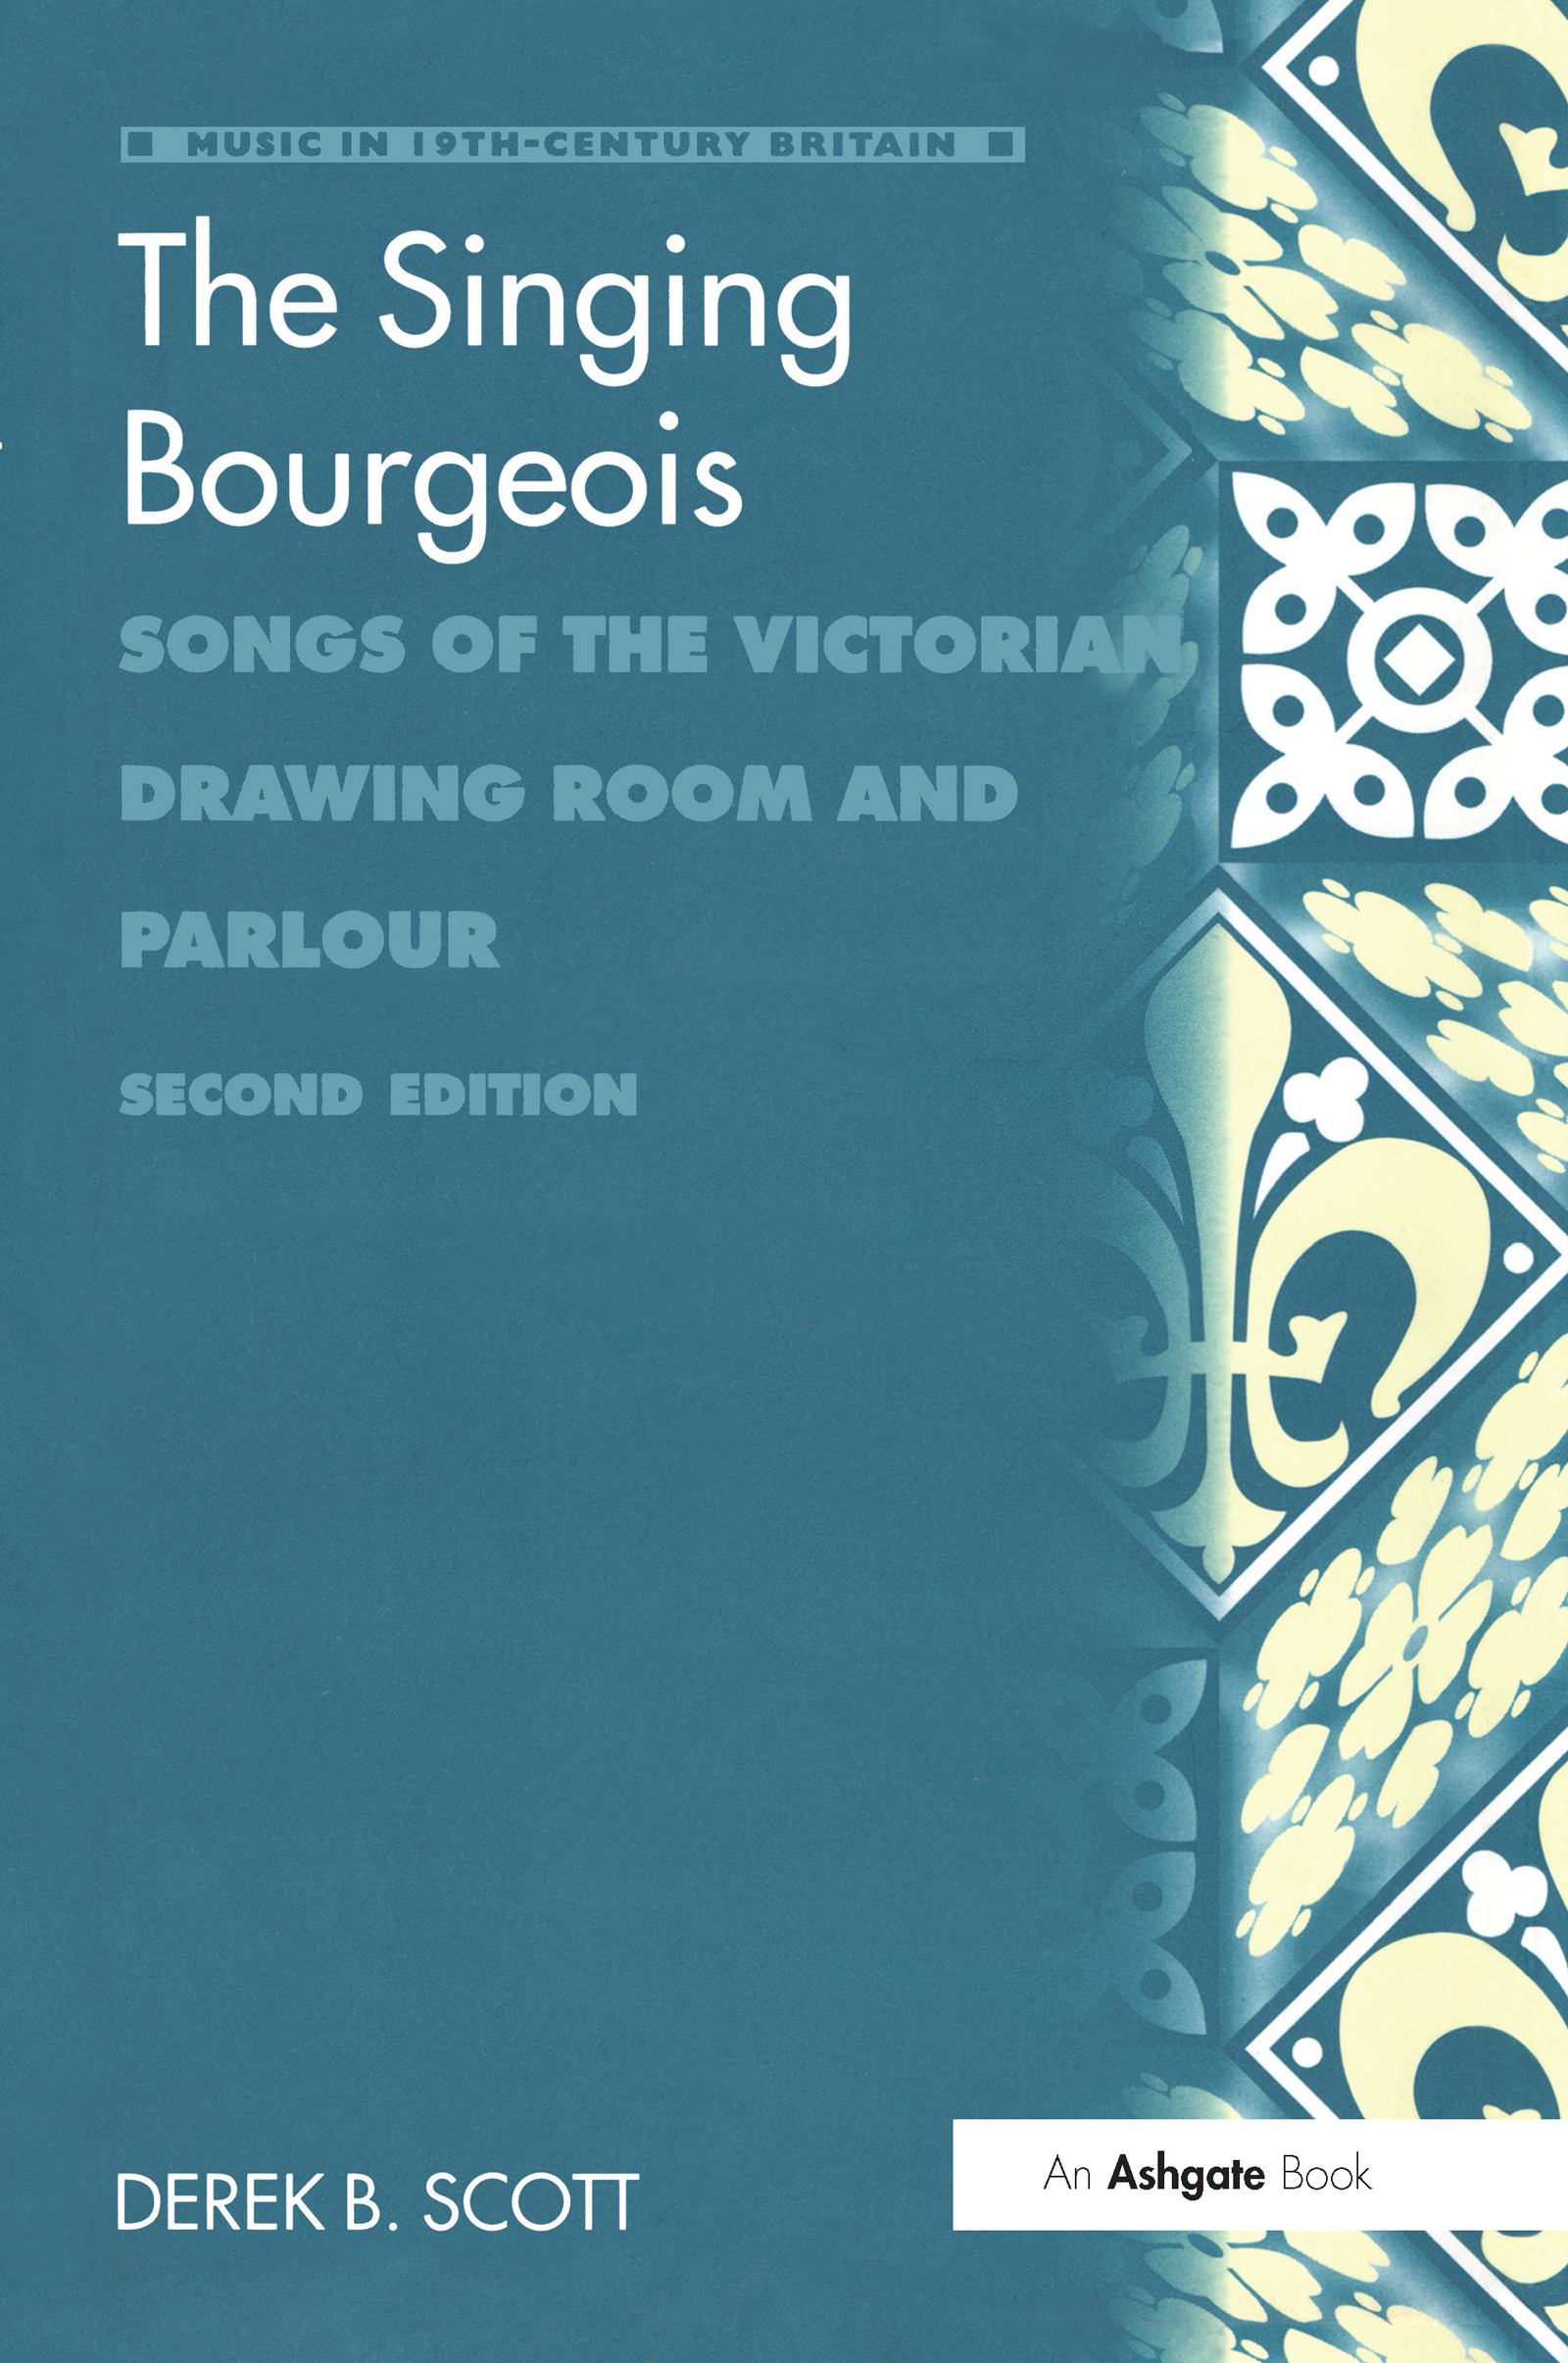 The Singing Bourgeois: Songs of the Victorian Drawing Room and Parlour book cover